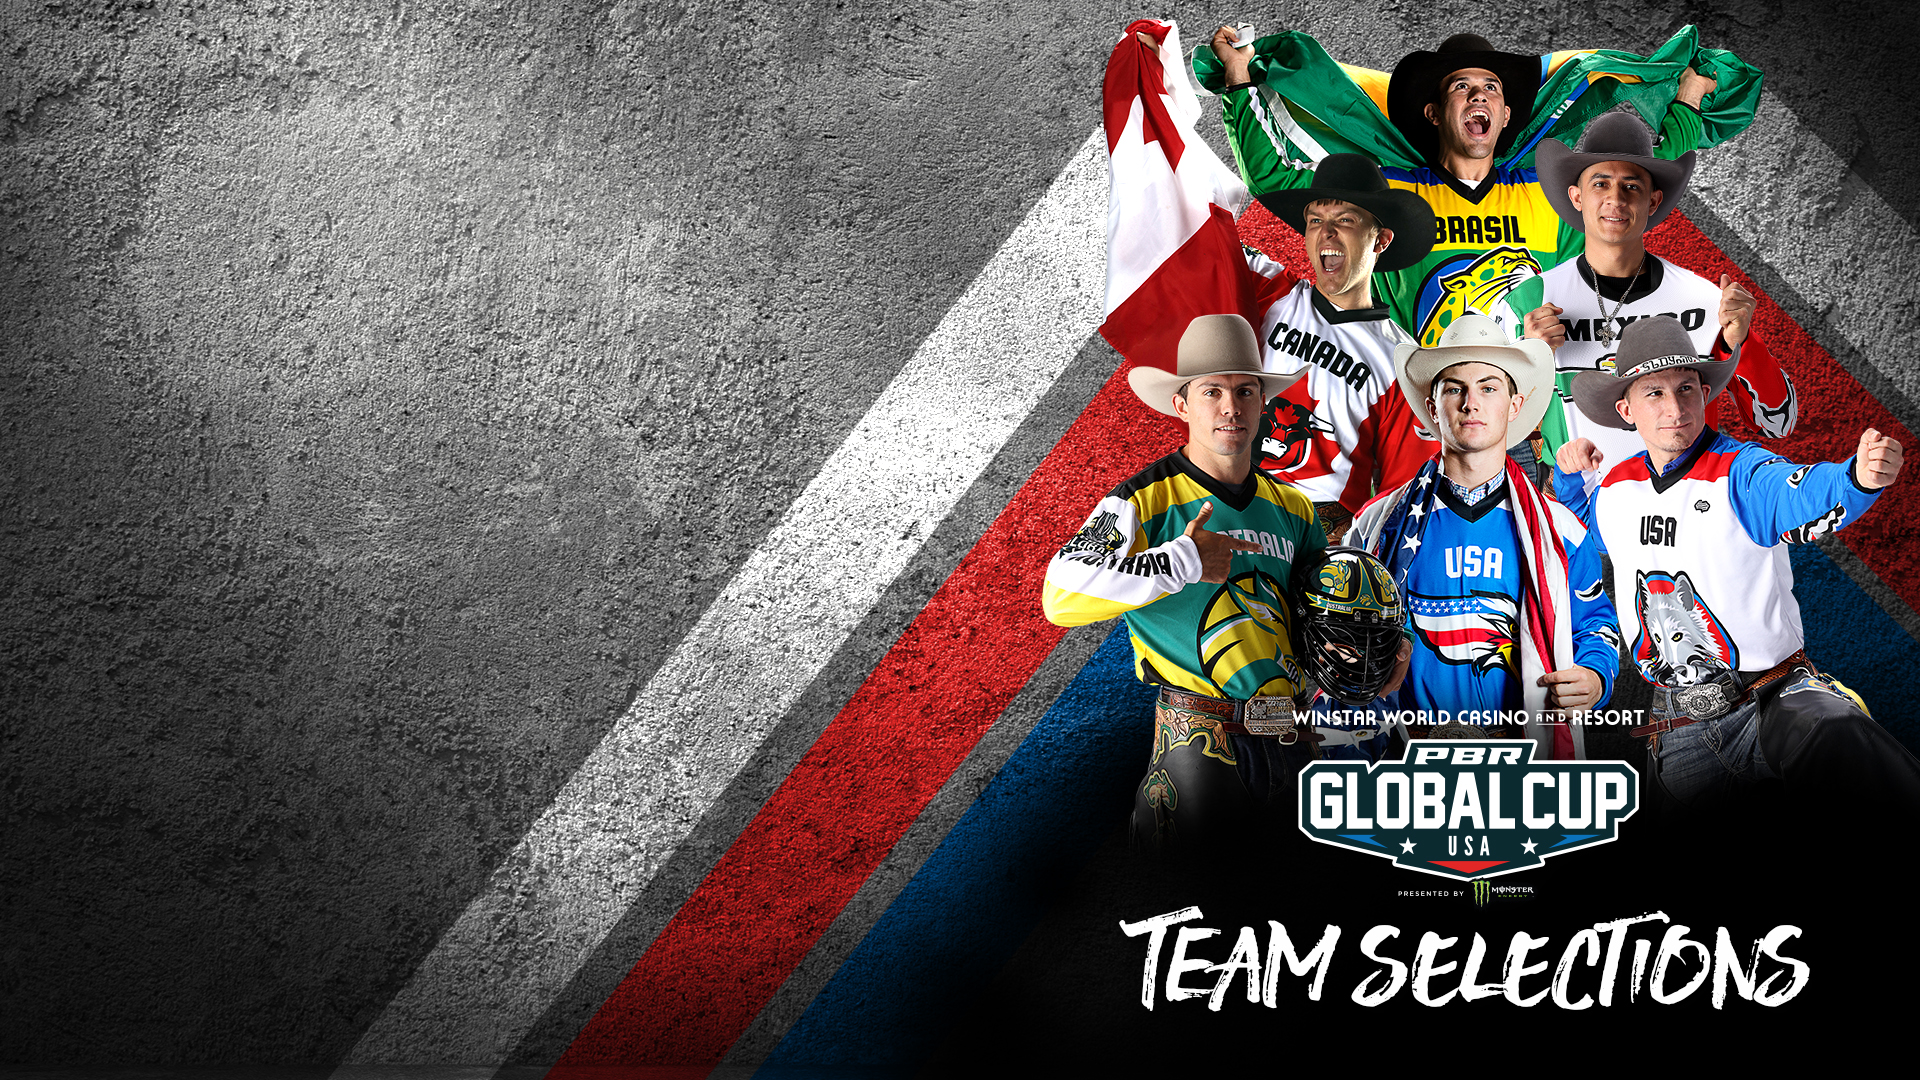 Initial rider selections announced for 2020 PBR Global Cup USA